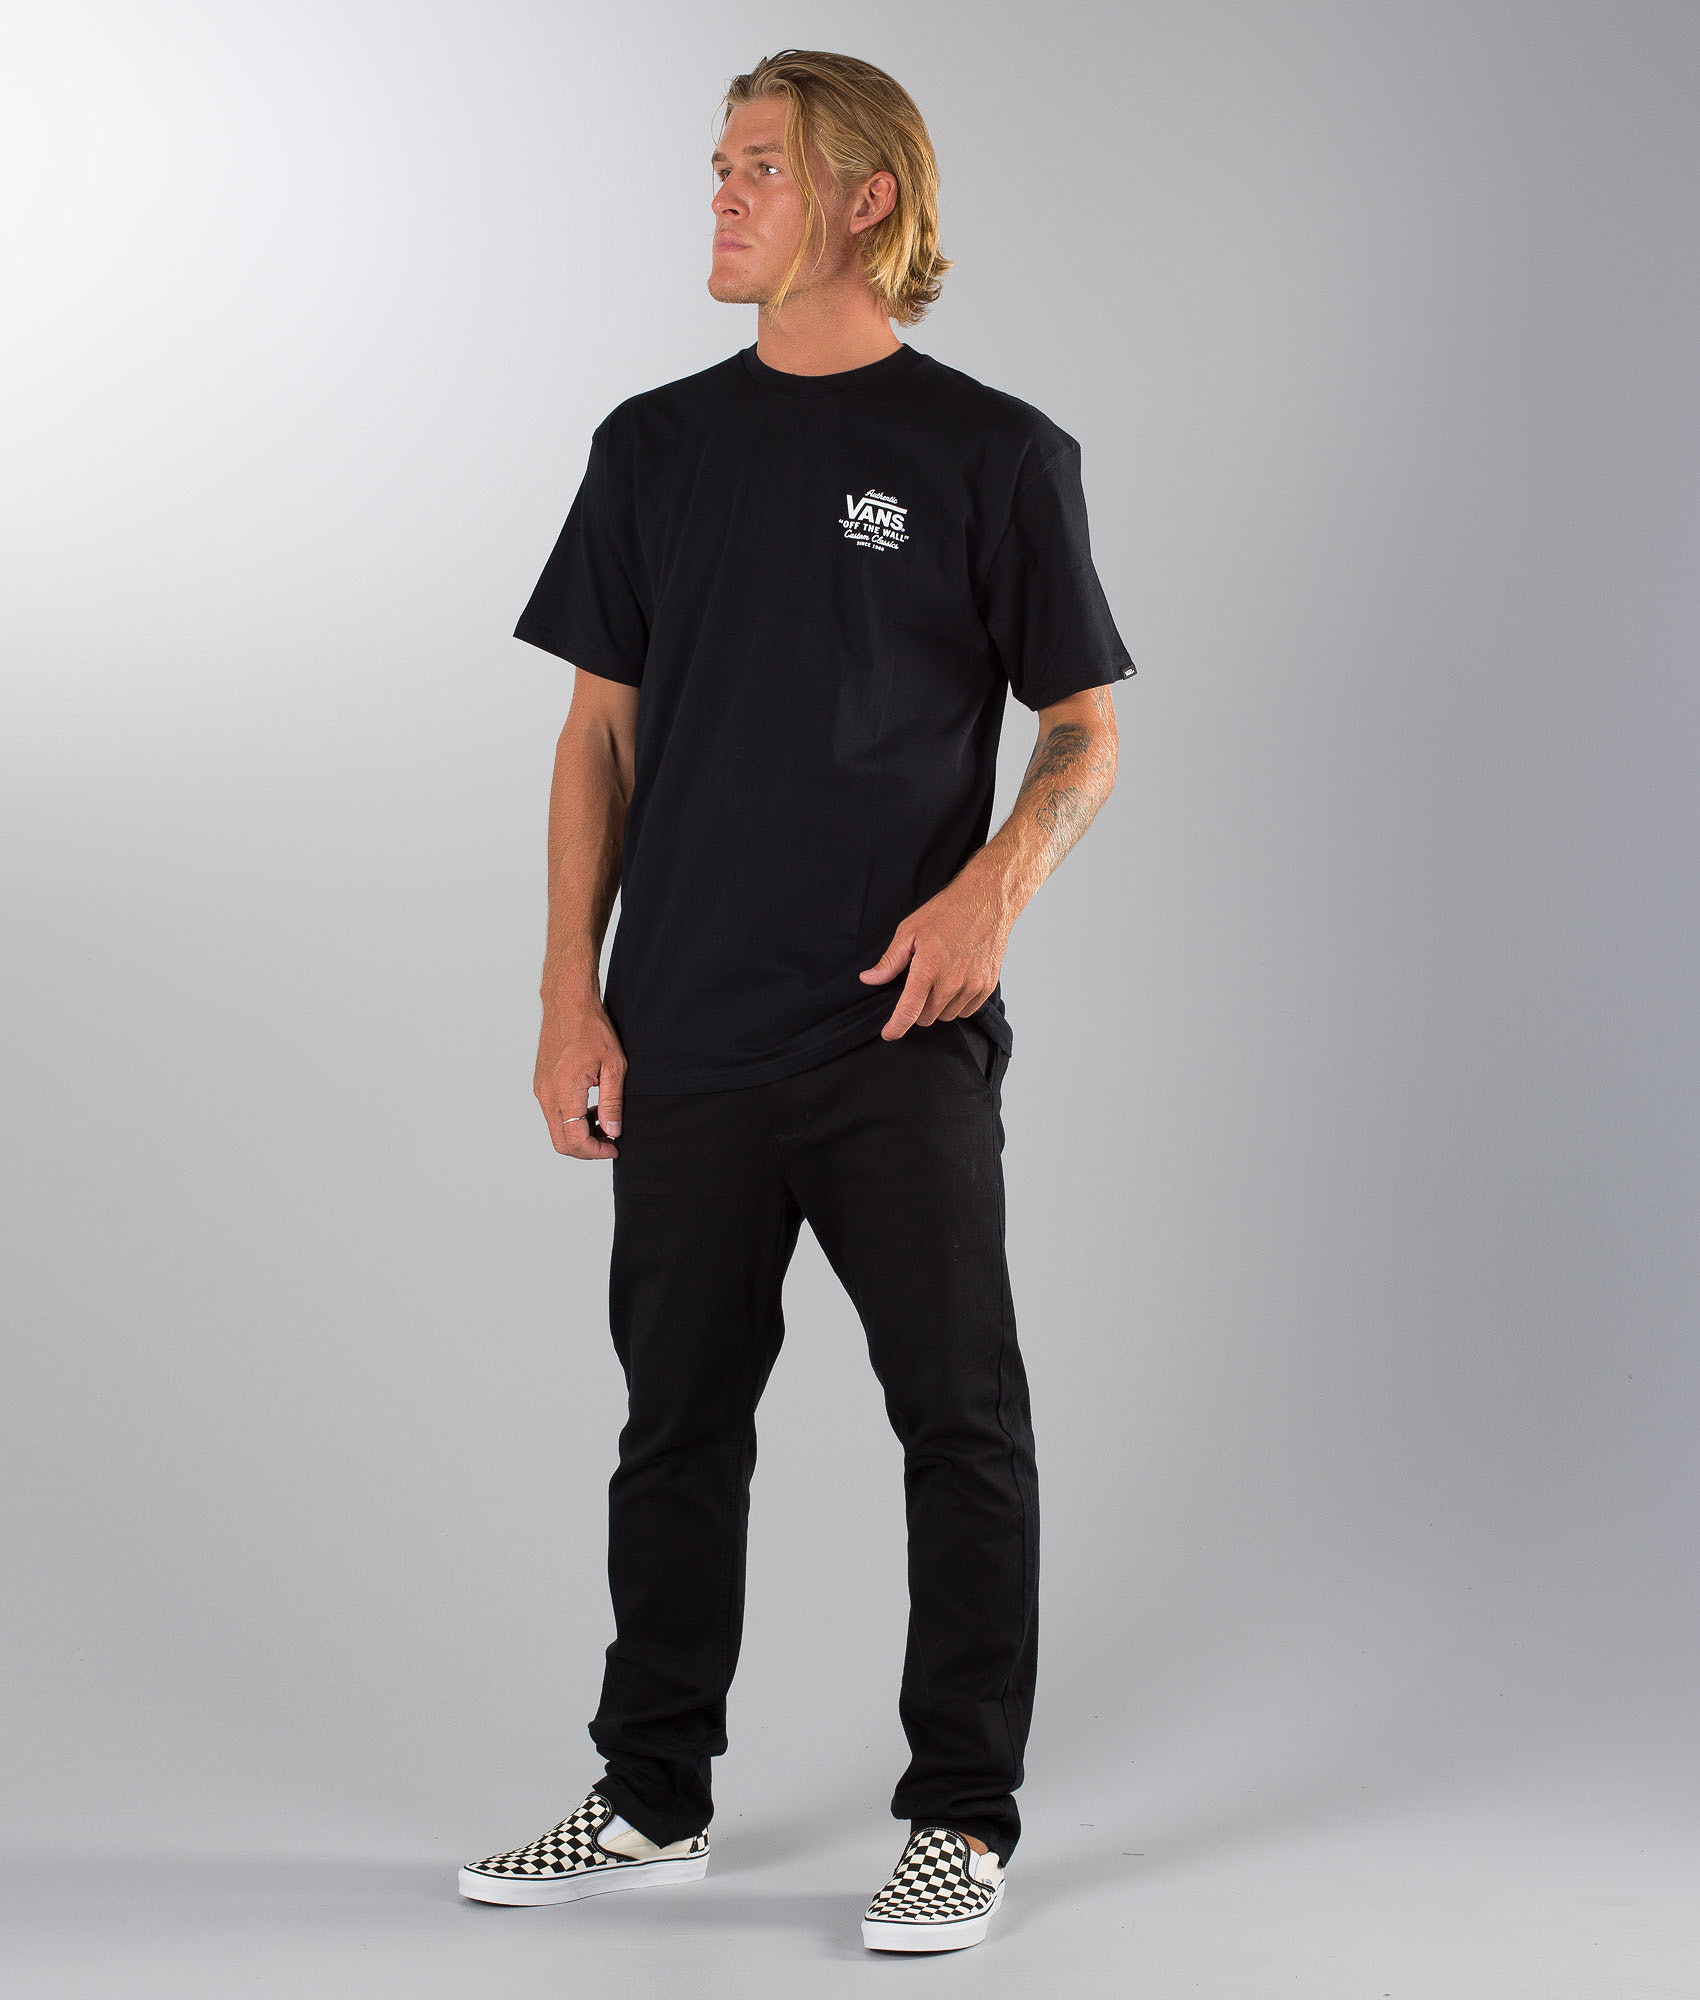 8663317529 Vans Holder St Classic T-shirt Black - Ridestore.com